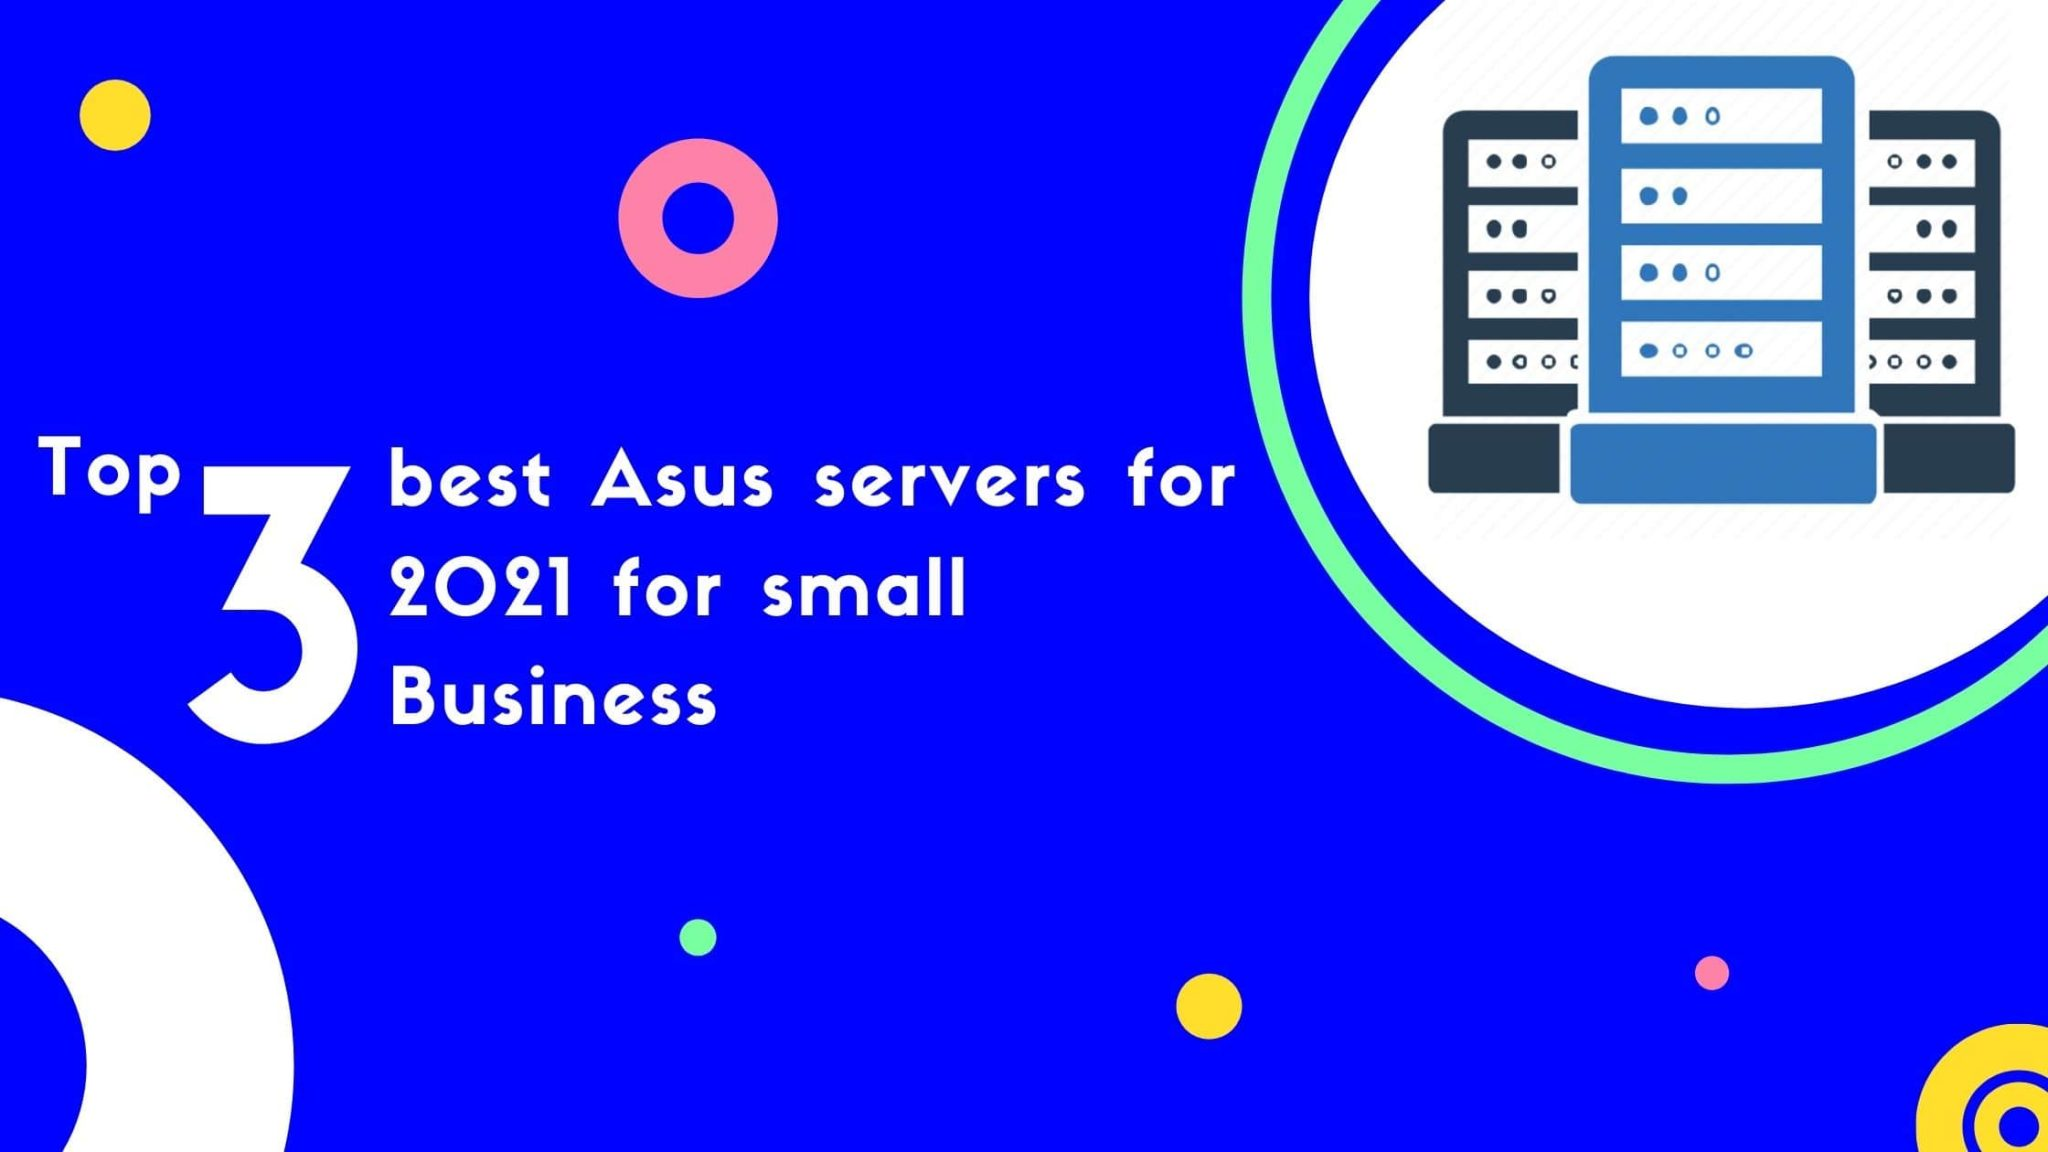 Top 3 best Asus servers for 2021 for small business